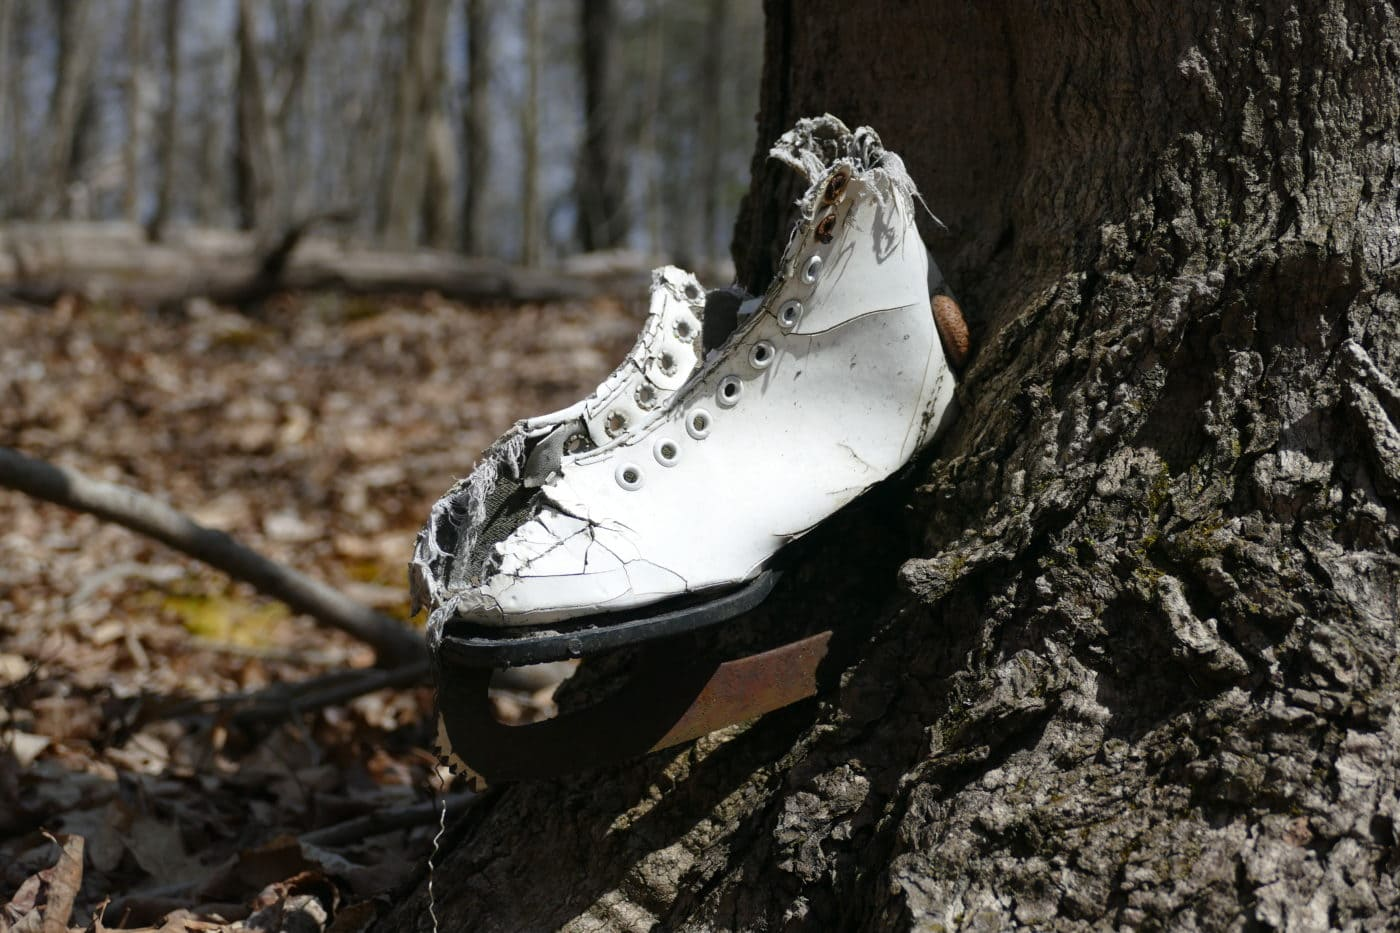 Ice Skate in Tree